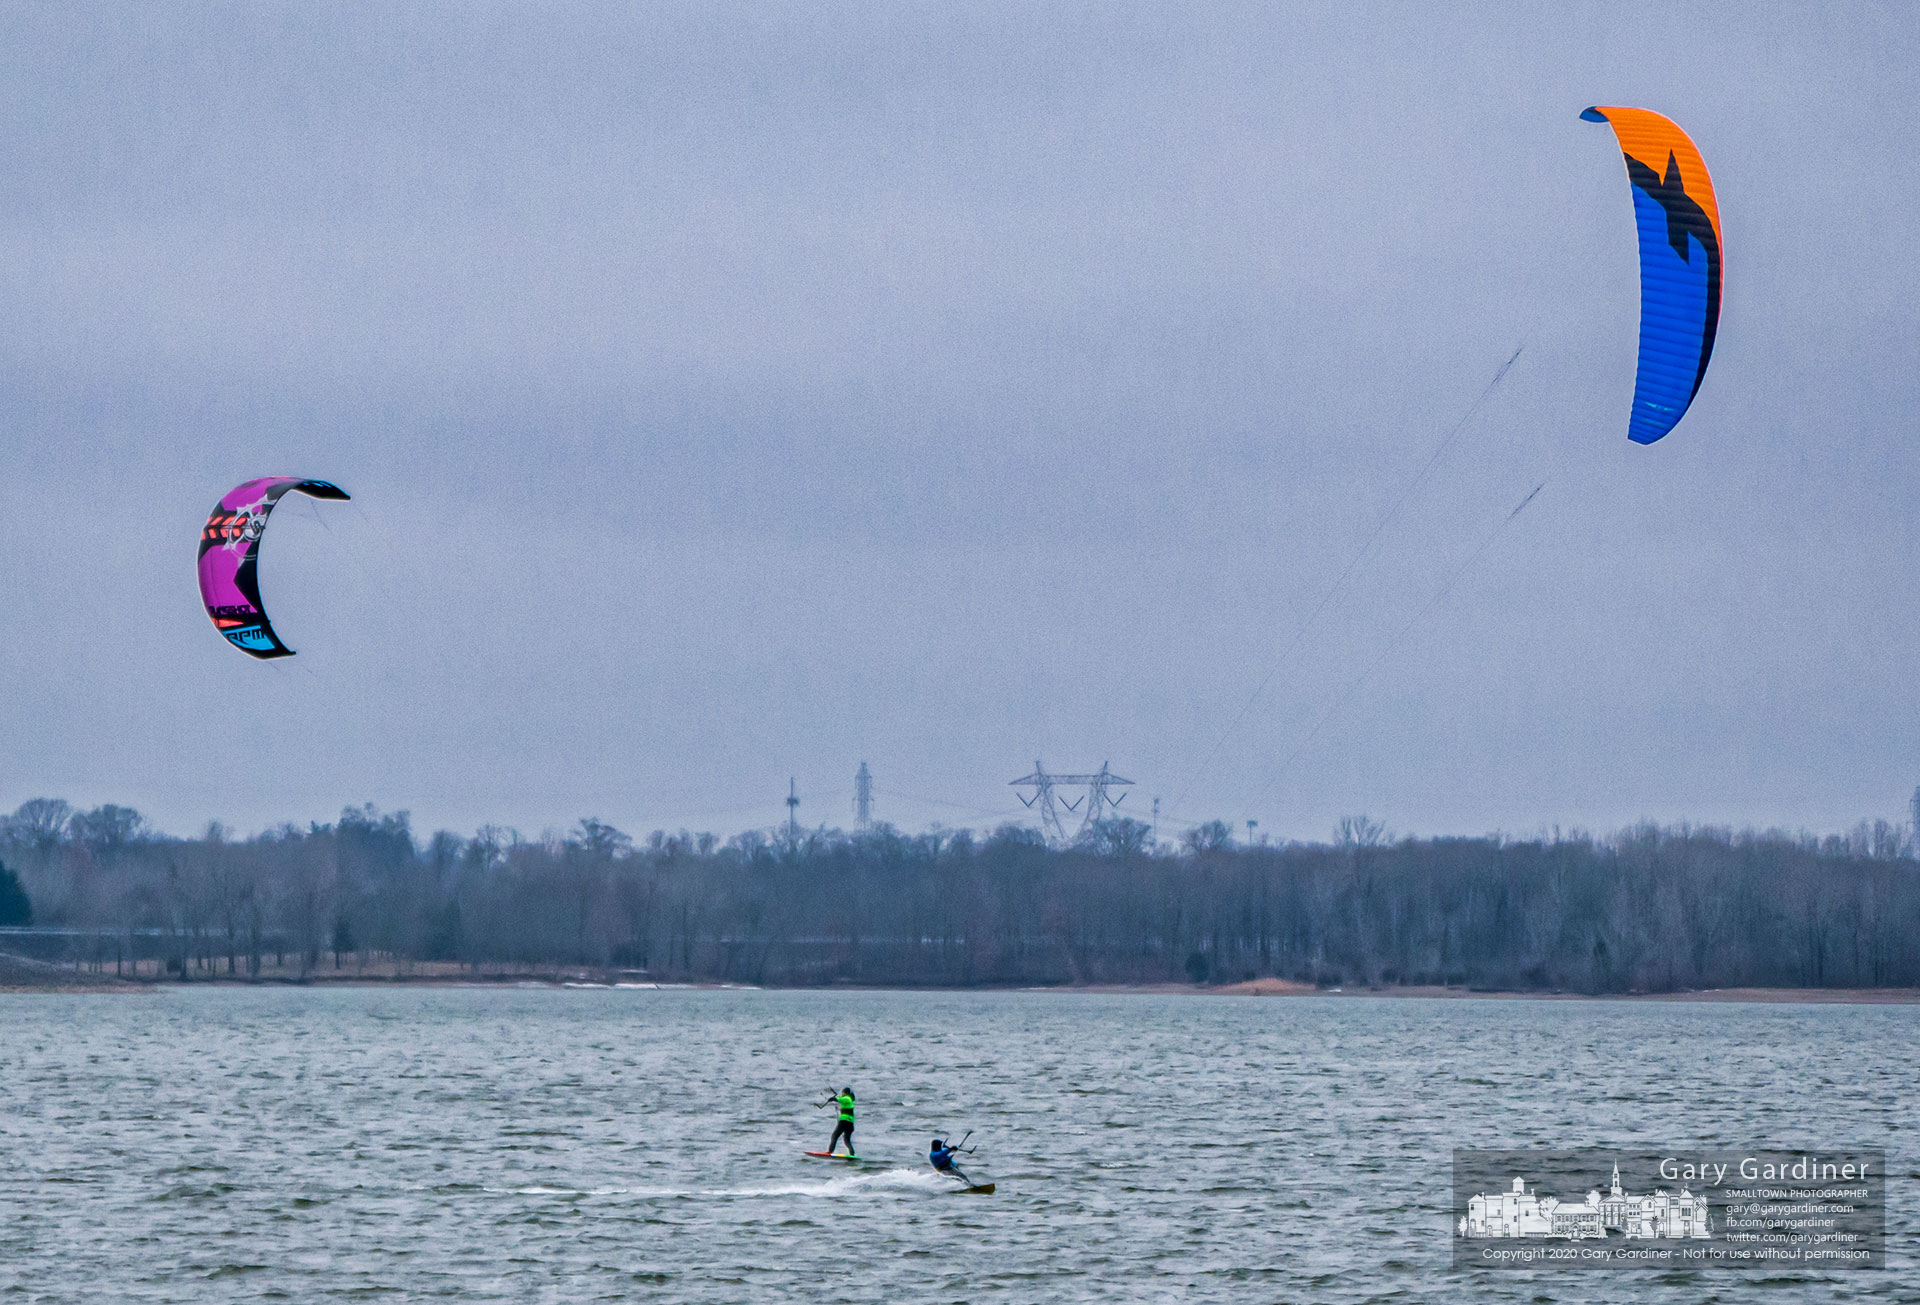 A pair of wetsuit clad kiteboarders pass each other on the wind-whipped, choppy waters of Alum Creek Lake on Sunday afternoon. My Final Photo for Jan. 26, 2020.